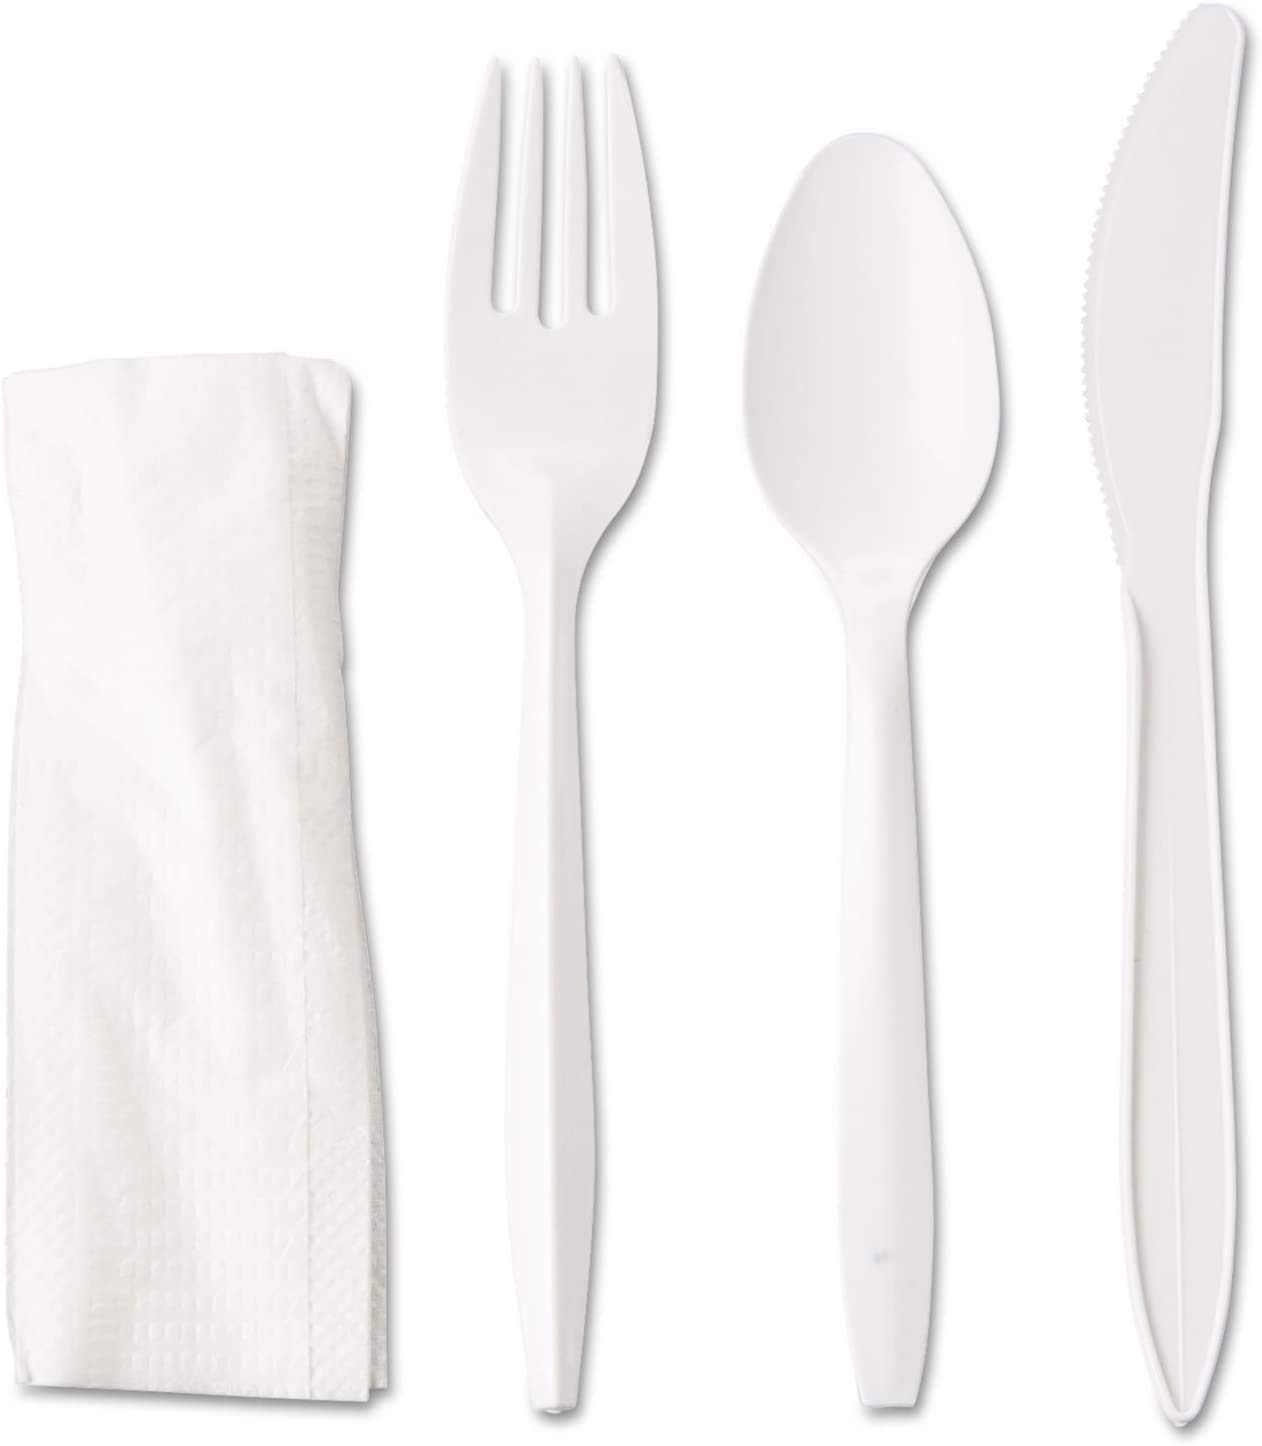 Pantryware Essentials Medium Weight White Plastic Cutlery Set with Napkin Individually Wrapped - 50CT